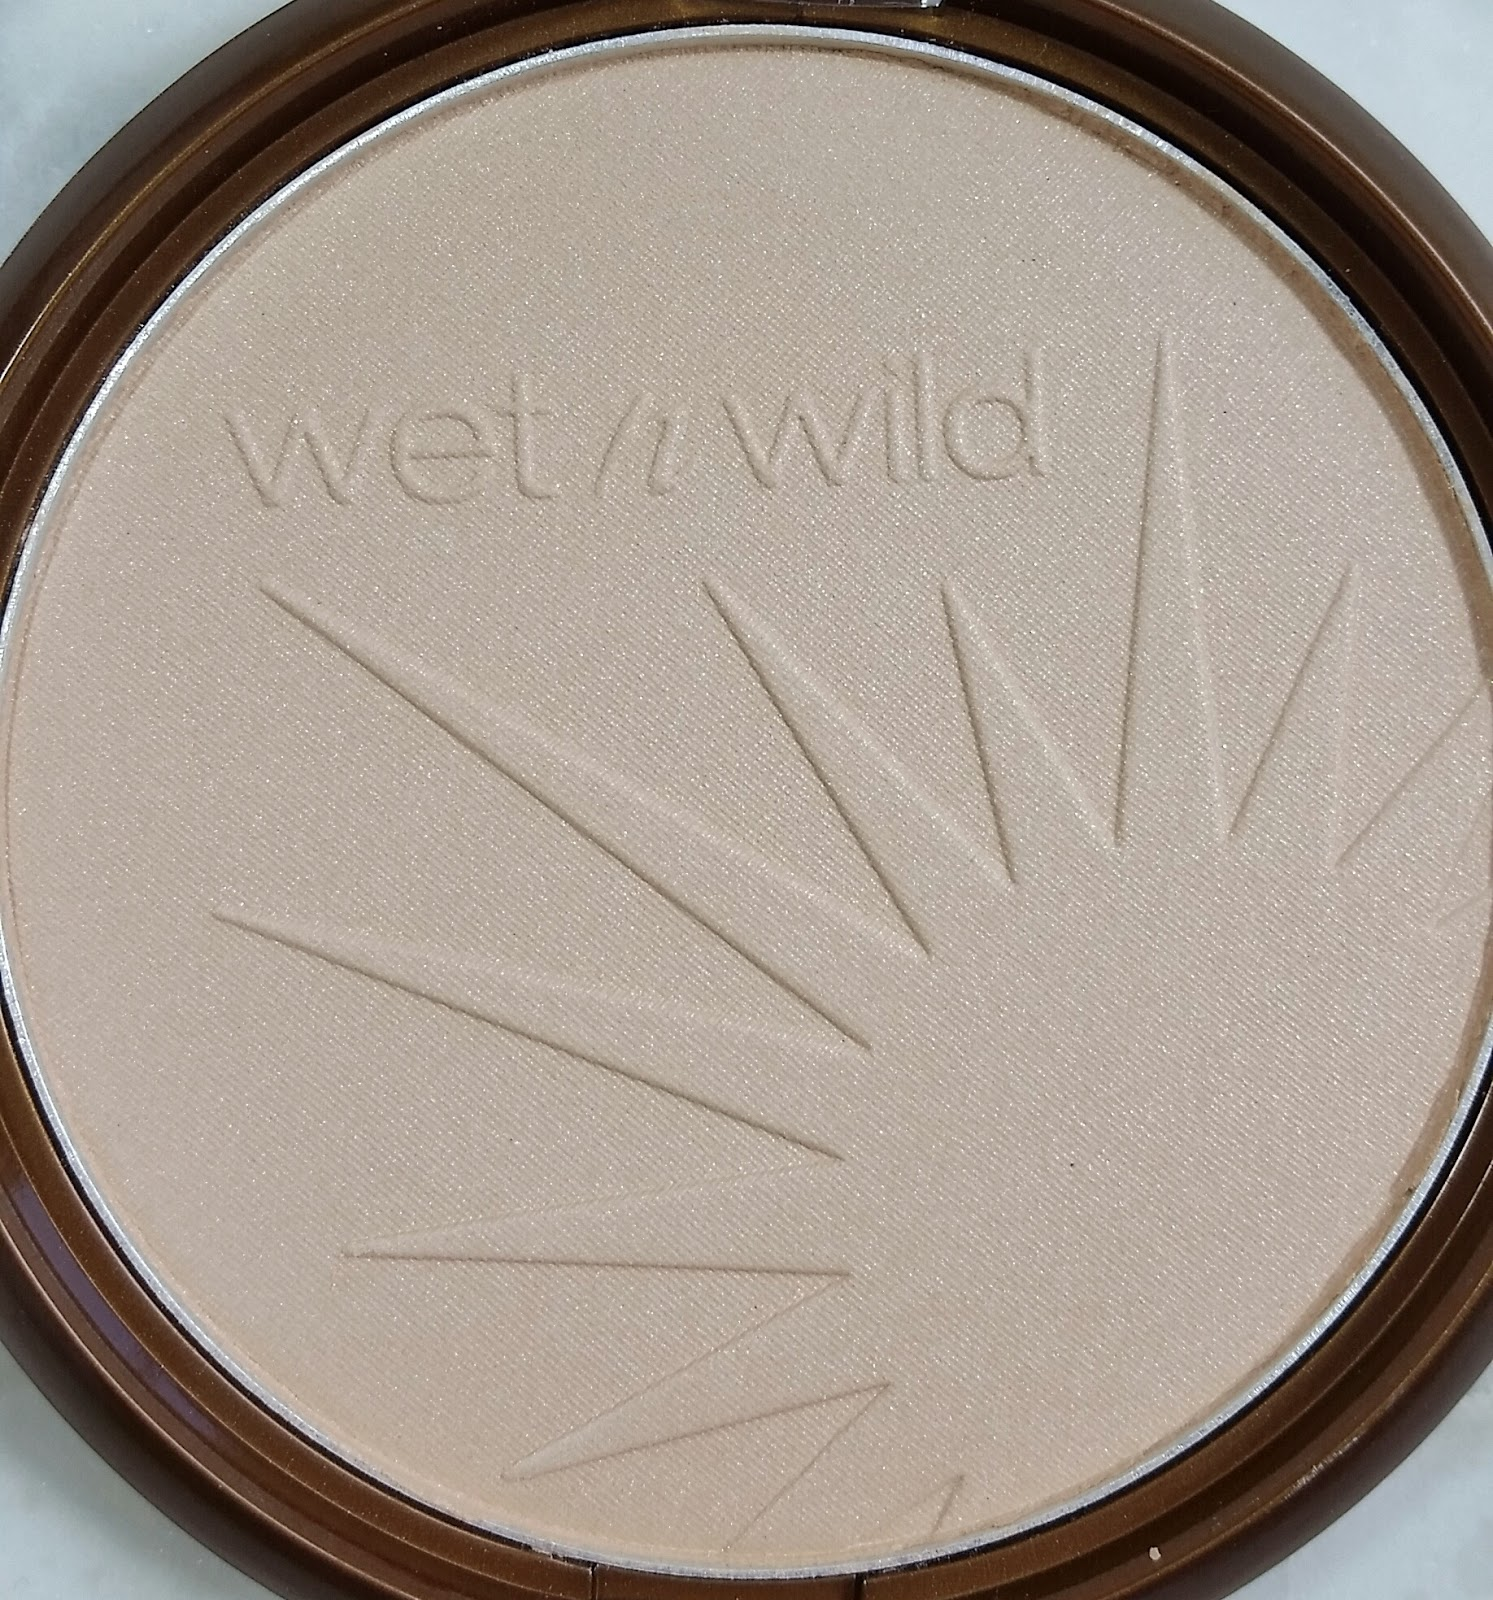 Wet n Wild Reserve Your Cabana Review